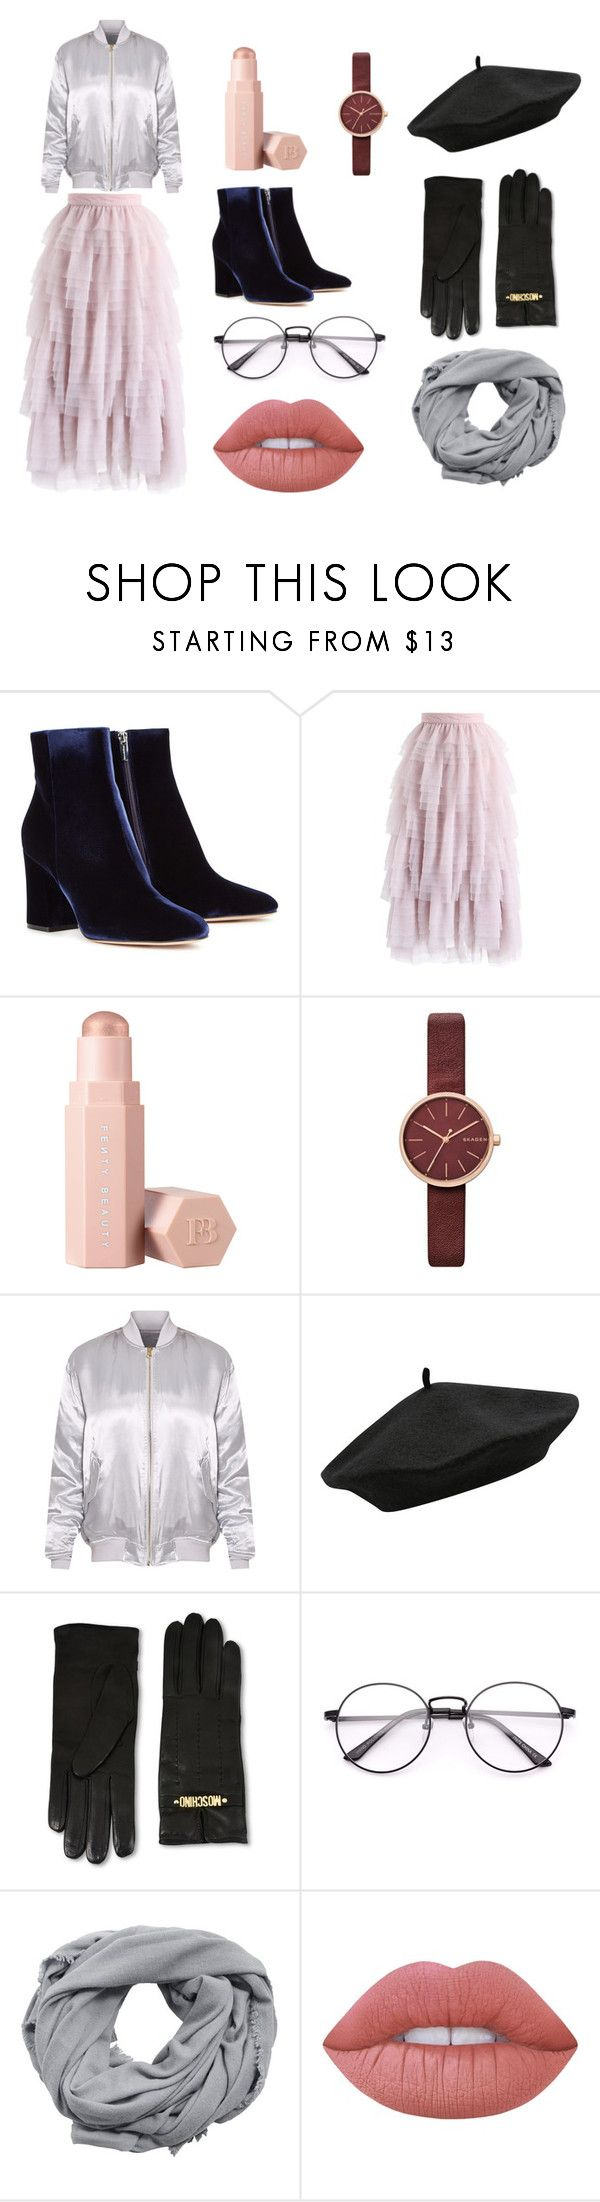 """French kiss set"" by sweetlittlebunny on Polyvore featuring moda, Gianvito Rossi, Chicwish, Puma, Skagen, M&Co, Moschino, MANGO i Lime Crime"